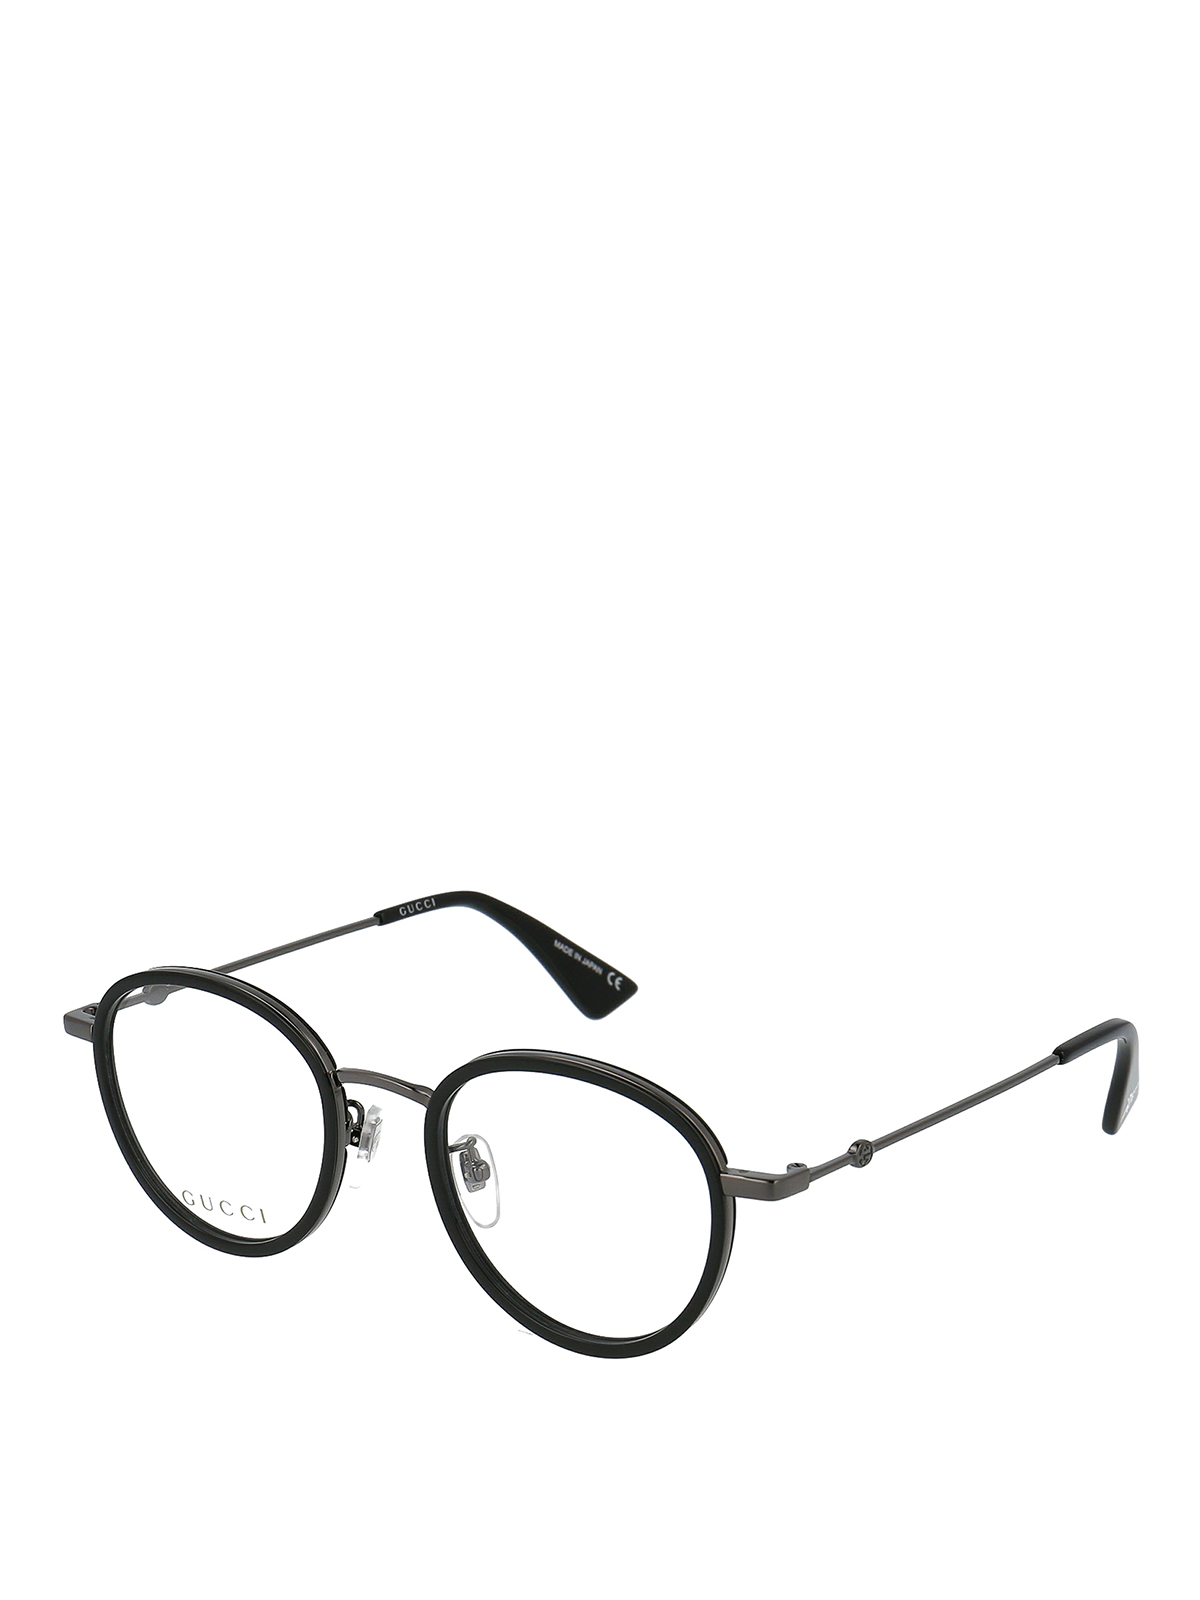 Gucci Black And Silver Metal Round Eyeglasses